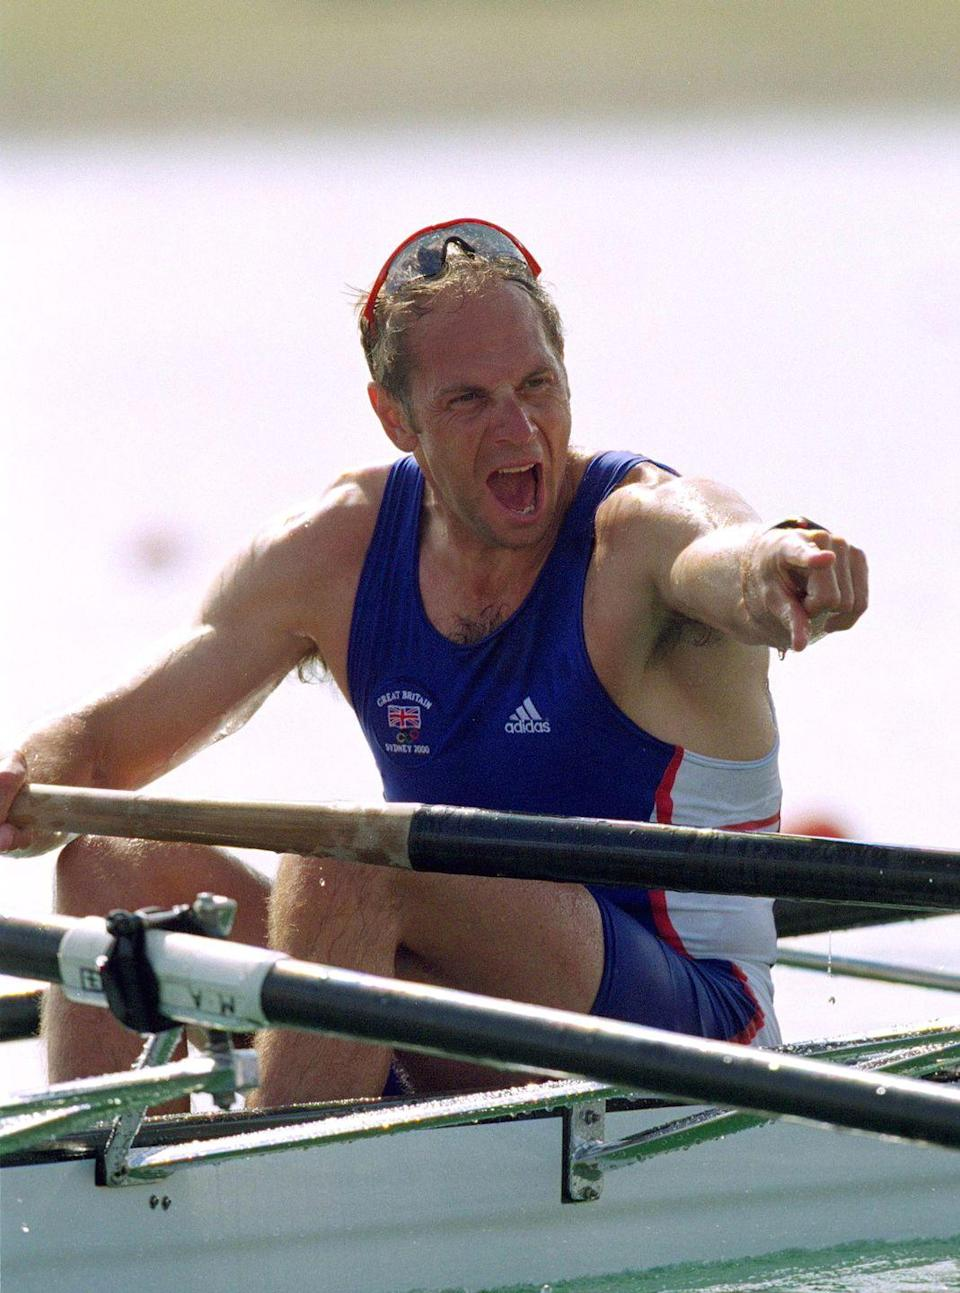 """<p>After winning his fourth gold medal in '96, British rower Steve Redgrave said, """"Anybody who sees me in a boat has my permission to shoot me."""" Well, he got back in a boat, winning his fifth gold in 2000 in a row by a matter of feet against Italy. </p>"""